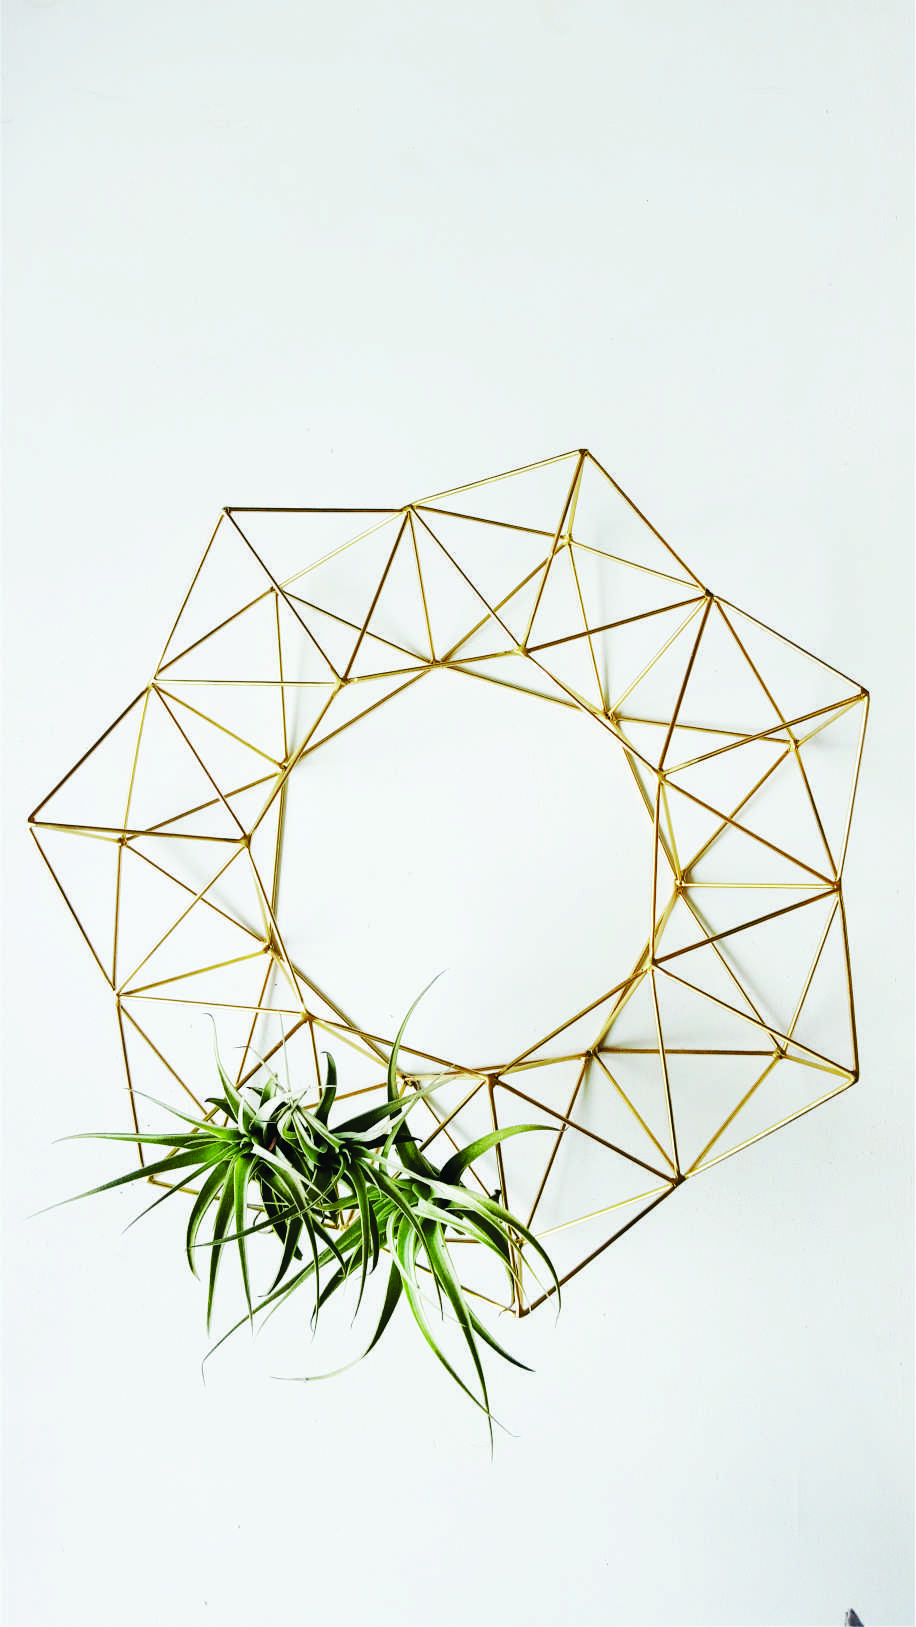 Geometric wreath I with plant